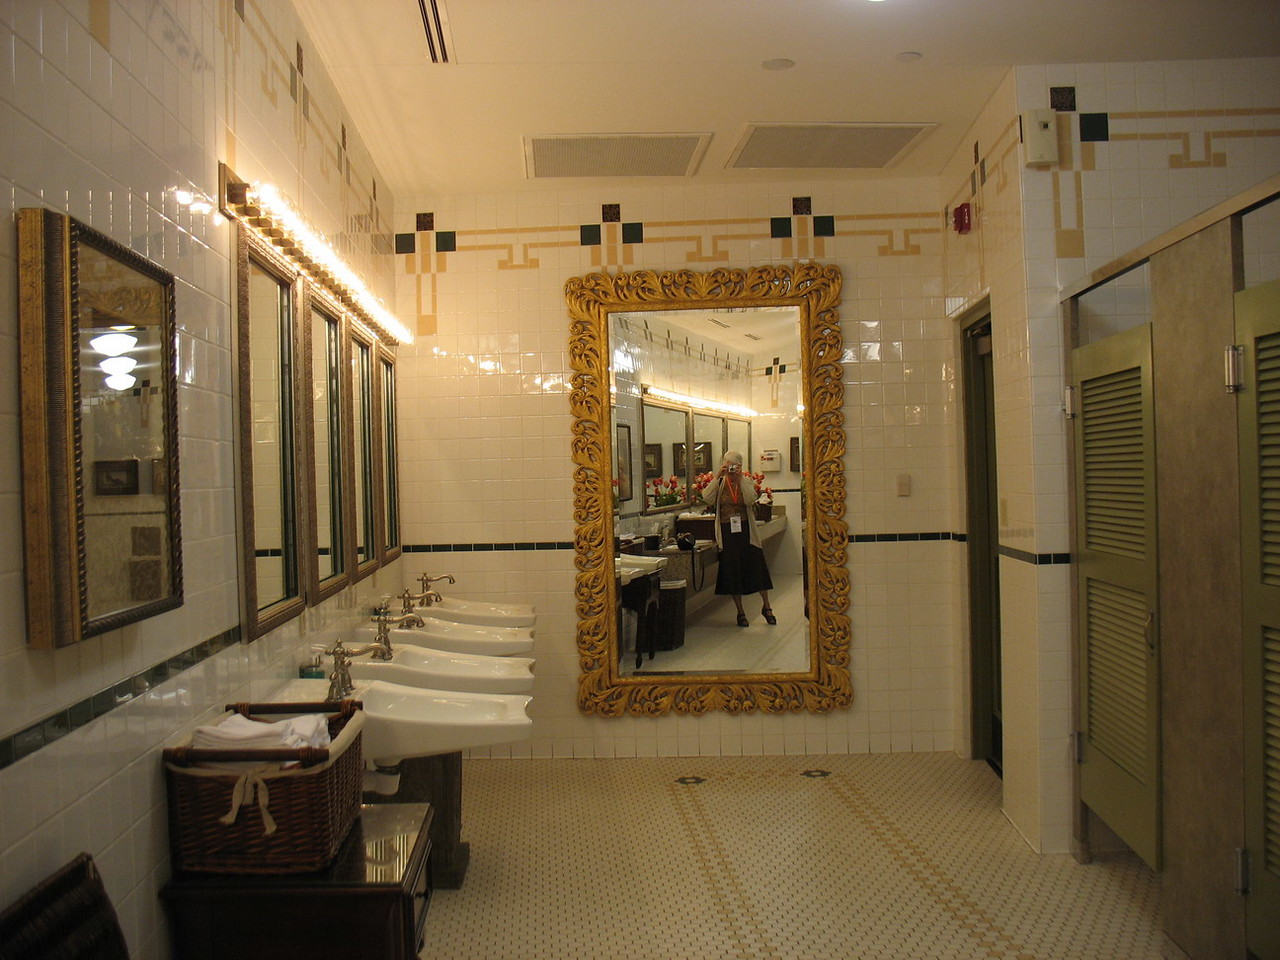 Me reflected in the large mirror at the end of the ladies' room. Note the row of original large sinks.